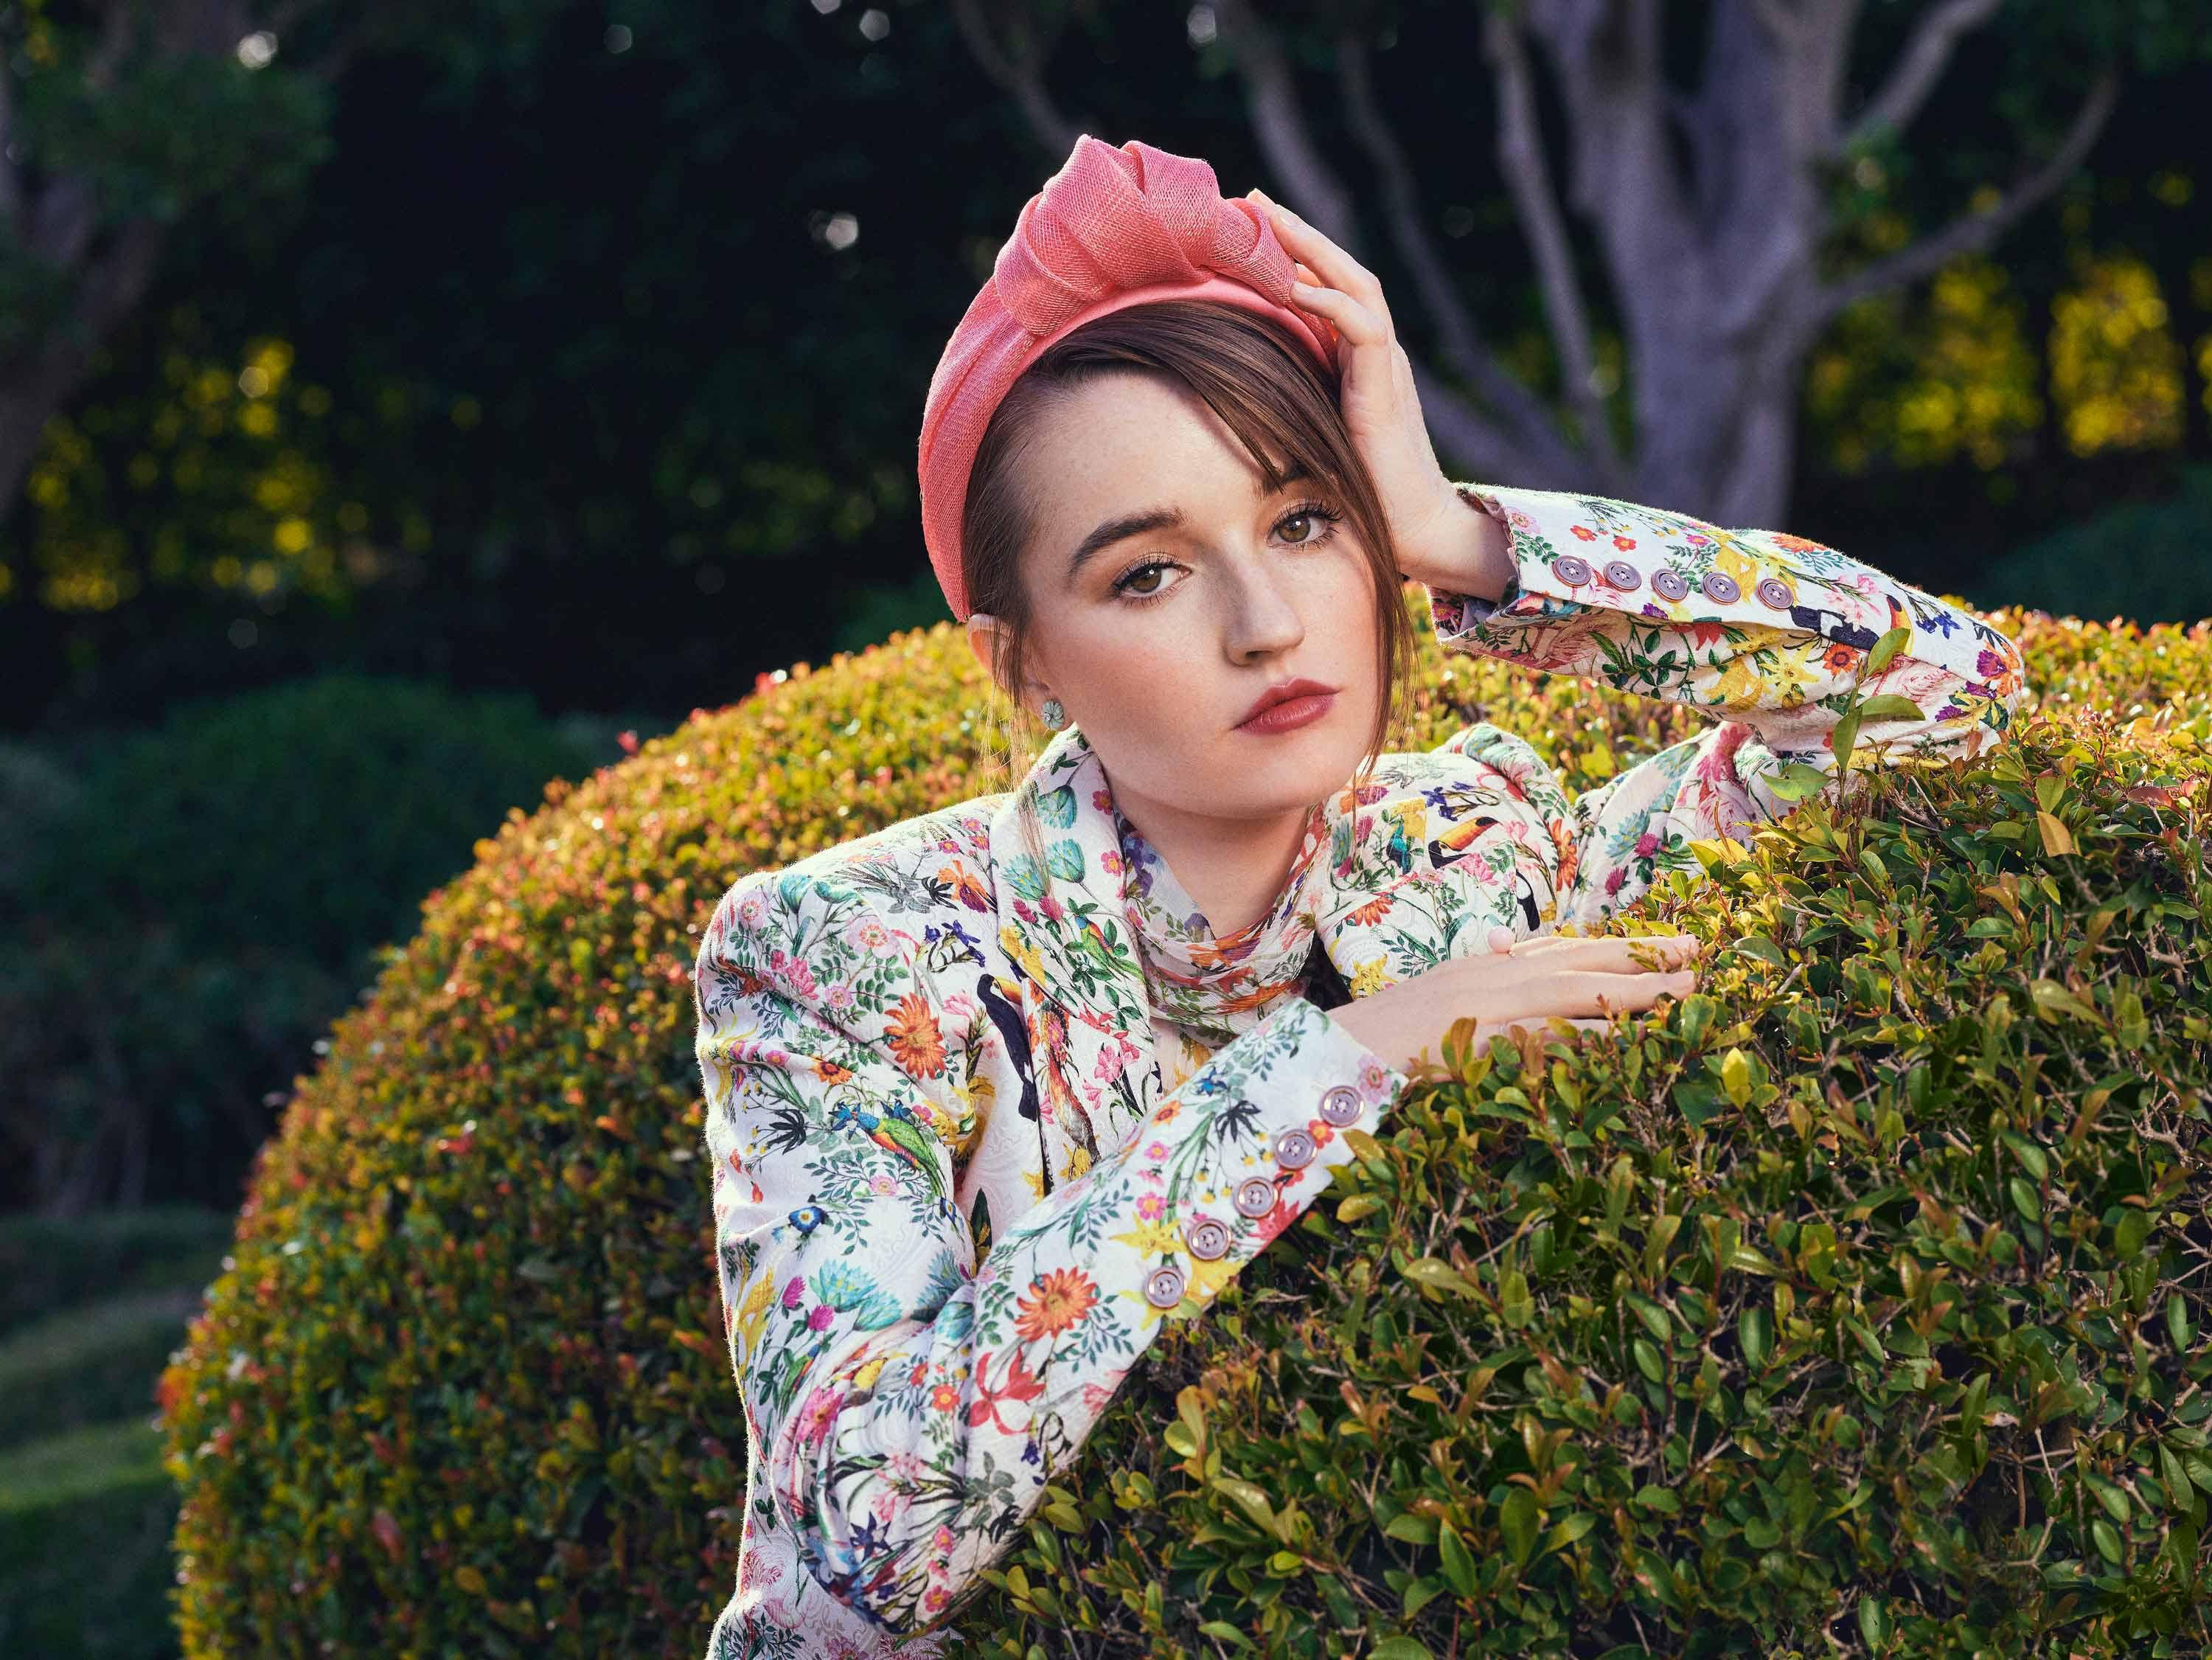 Kaitlyn Dever wears a floral jacket during a garden photo shoot